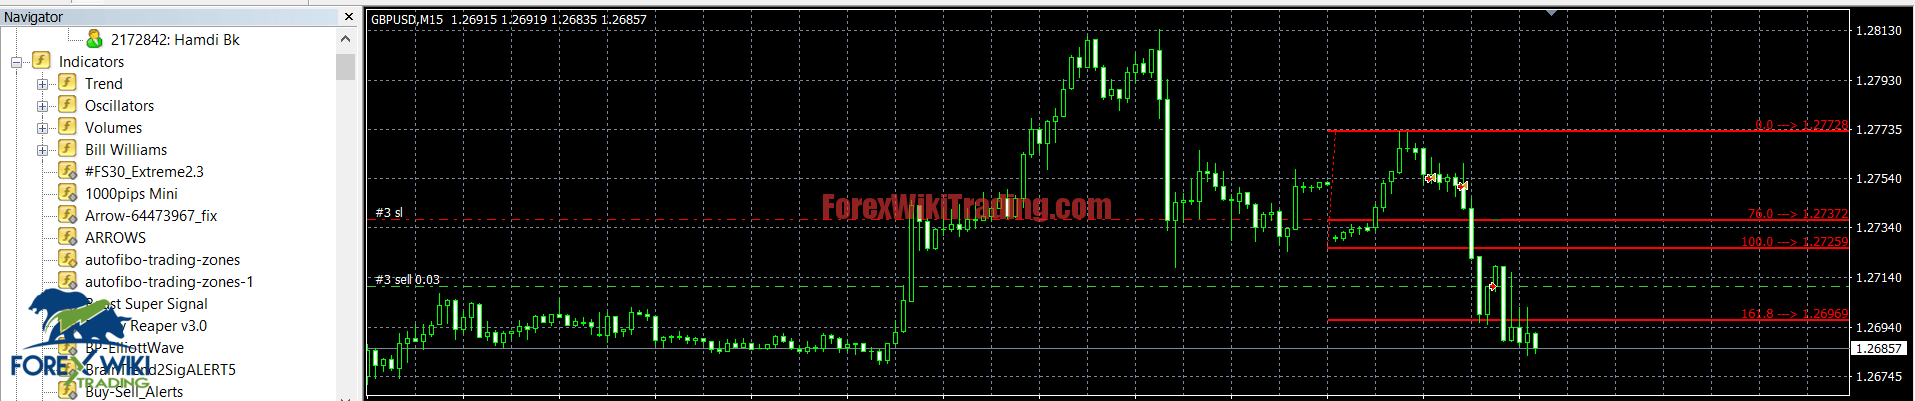 Desire EA Trend ActionTrading Robot Get 100 Profit Every Month